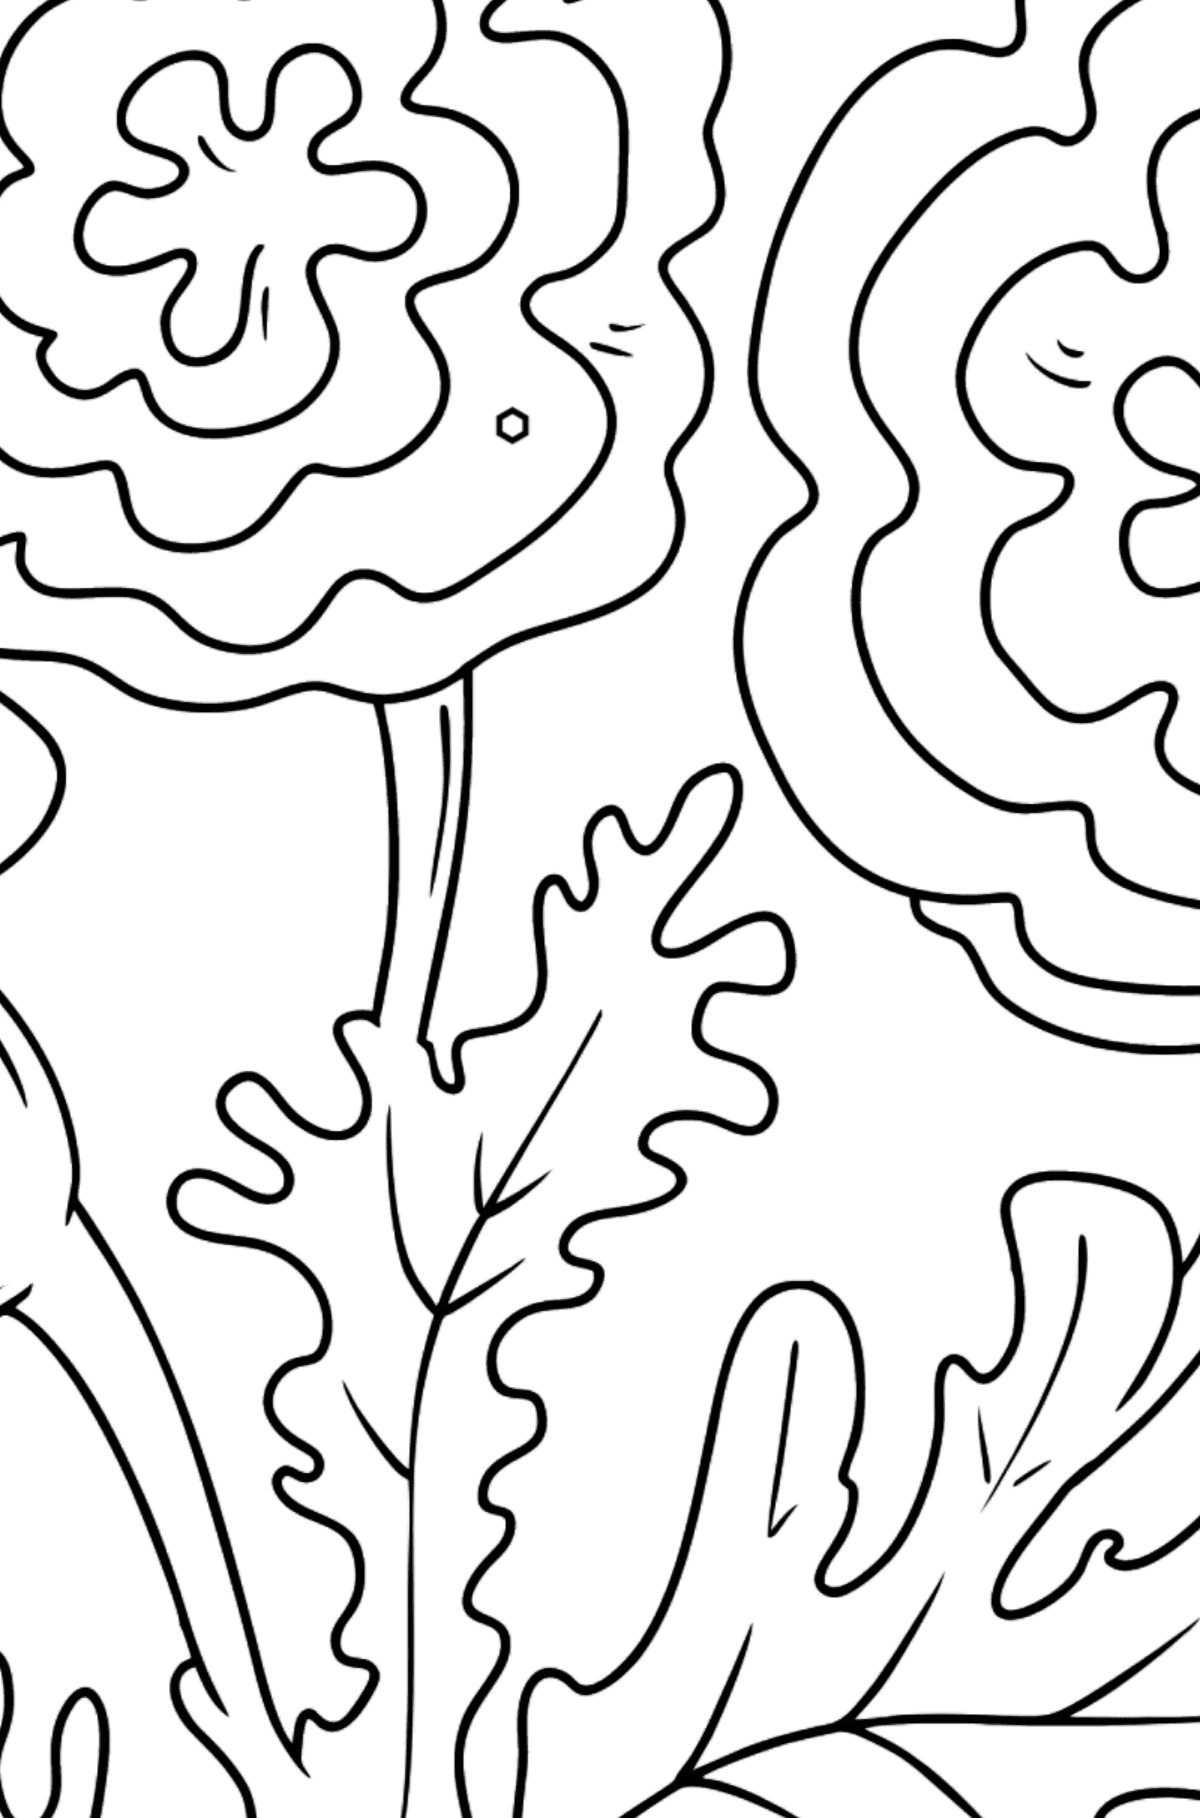 Coloring Page - Autumn flowers - Coloring by Geometric Shapes for Kids